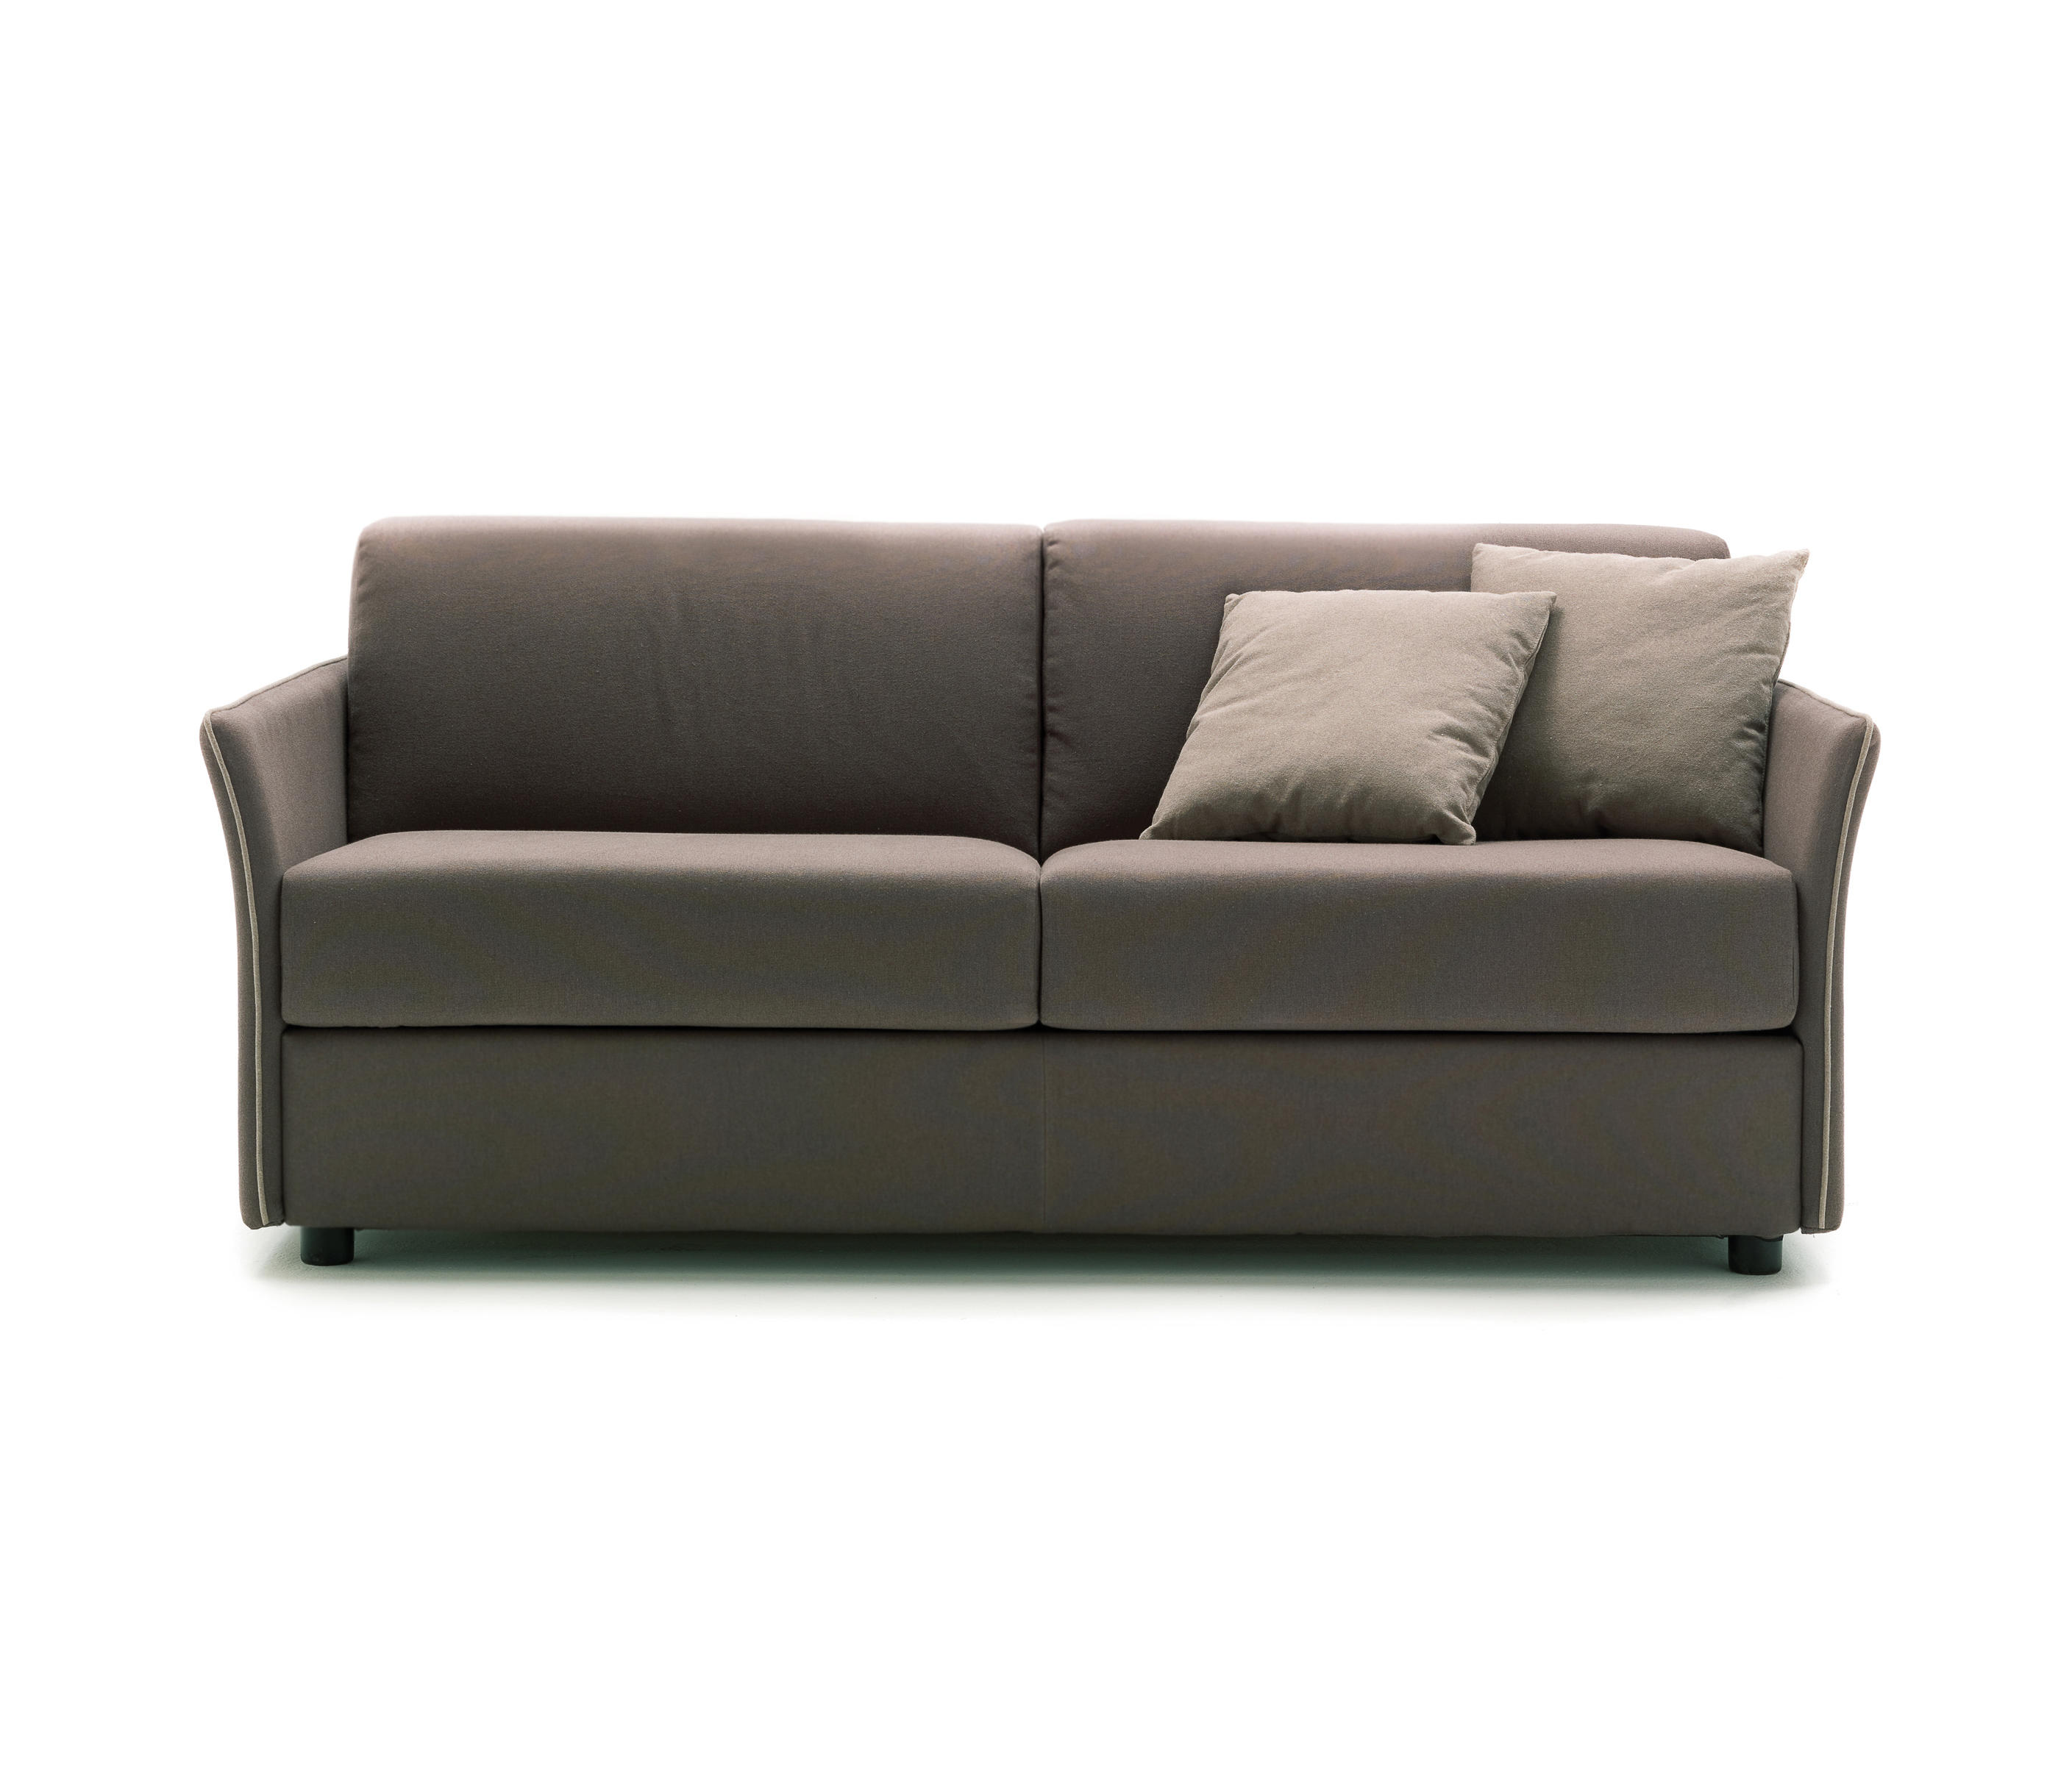 Stan - Sofa beds by Milano Bedding  Architonic